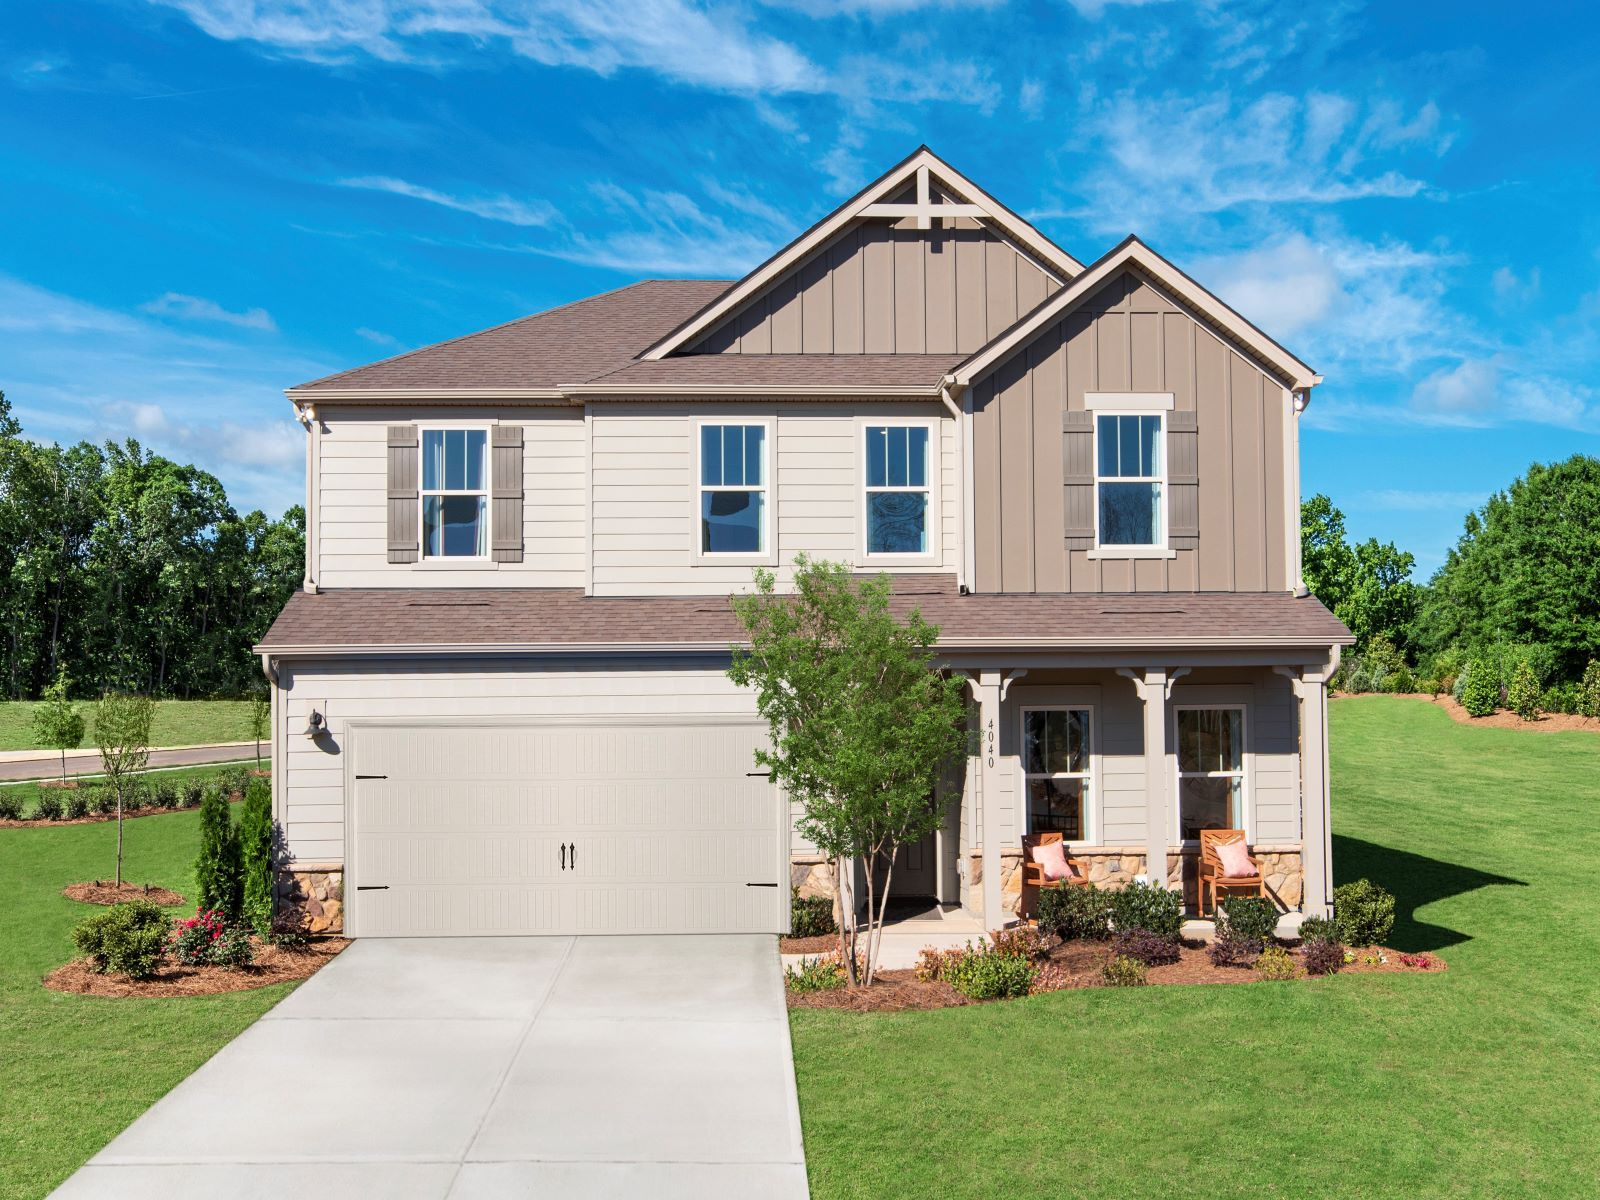 Chastain model home exterior